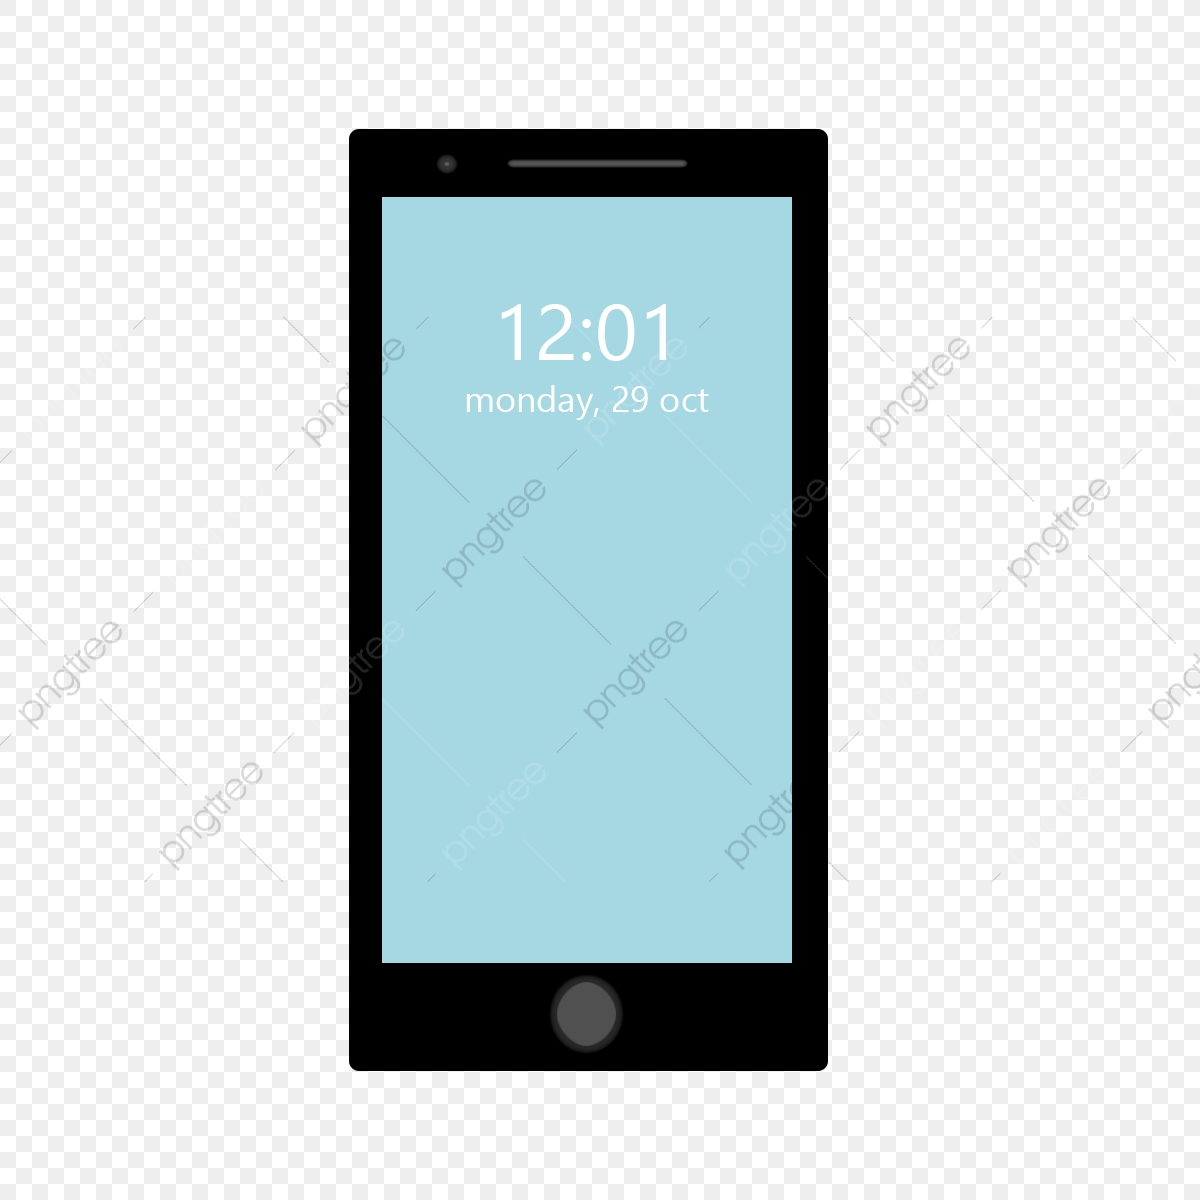 Phone Clipart, Phone, Iphone PNG and Vector with Transparent.